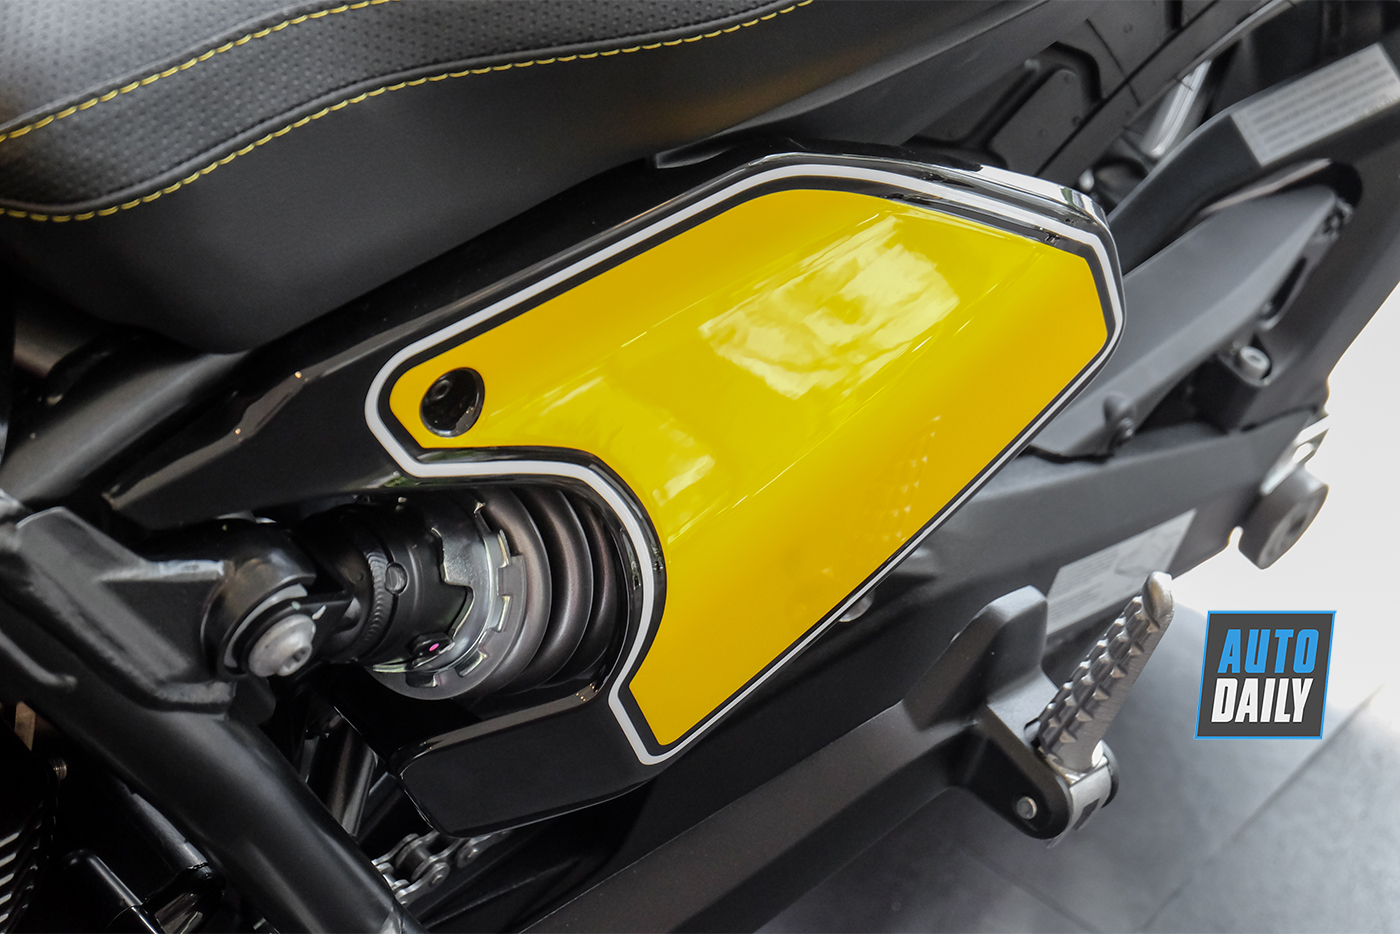 ducati-scrambler-full-throttle-2019-18.jpg